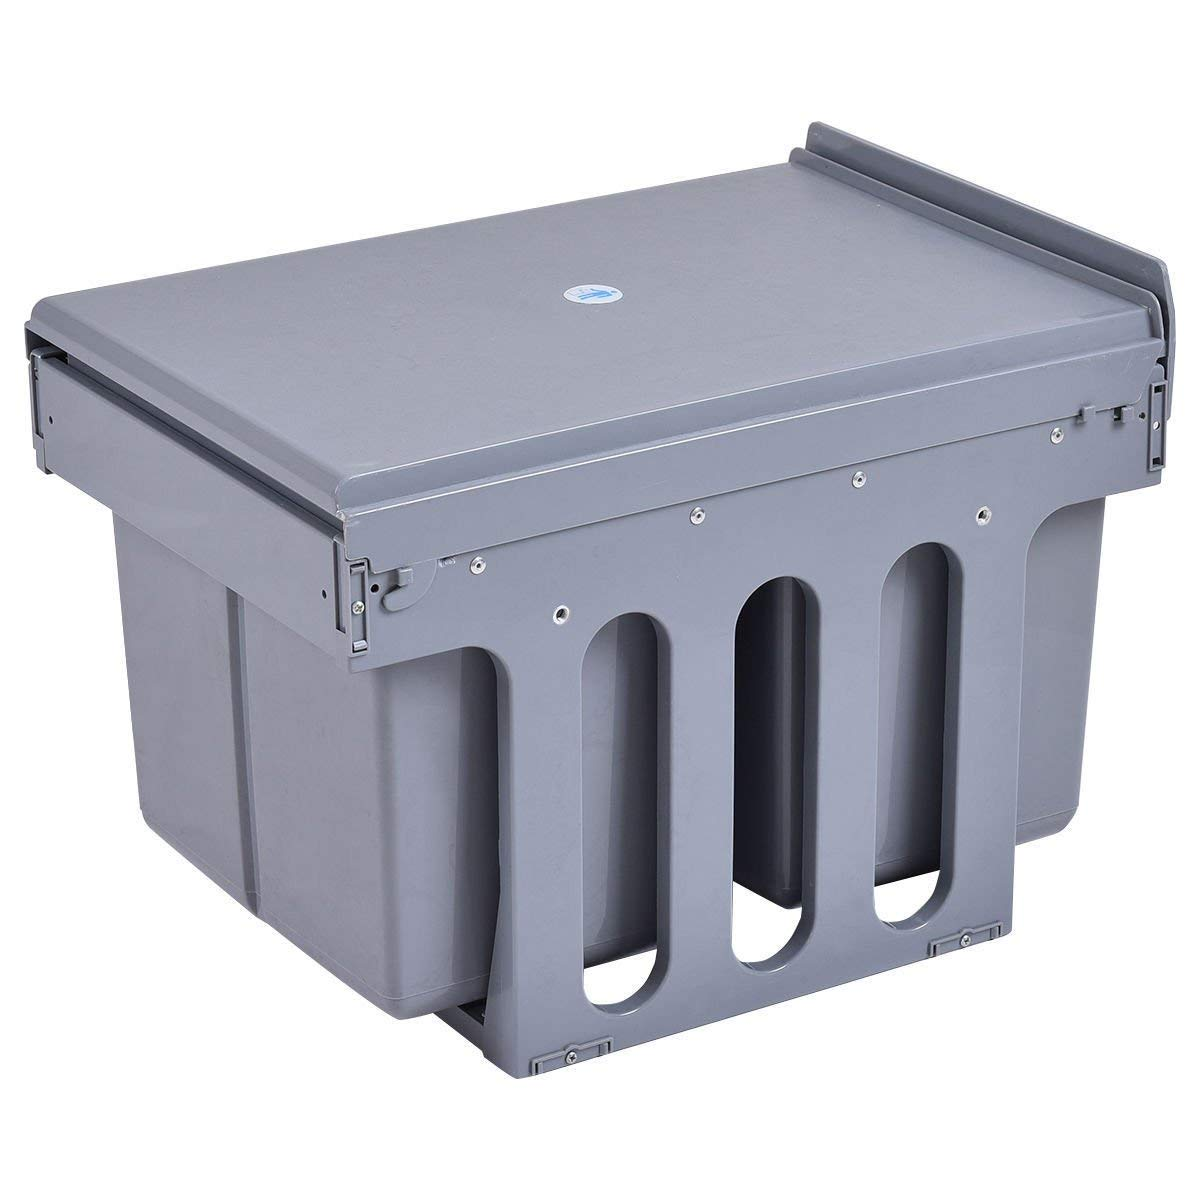 Recycling Waste Bin Rubbish Trash 2-Compartment 8 Gal Household Kitchen Pull Out